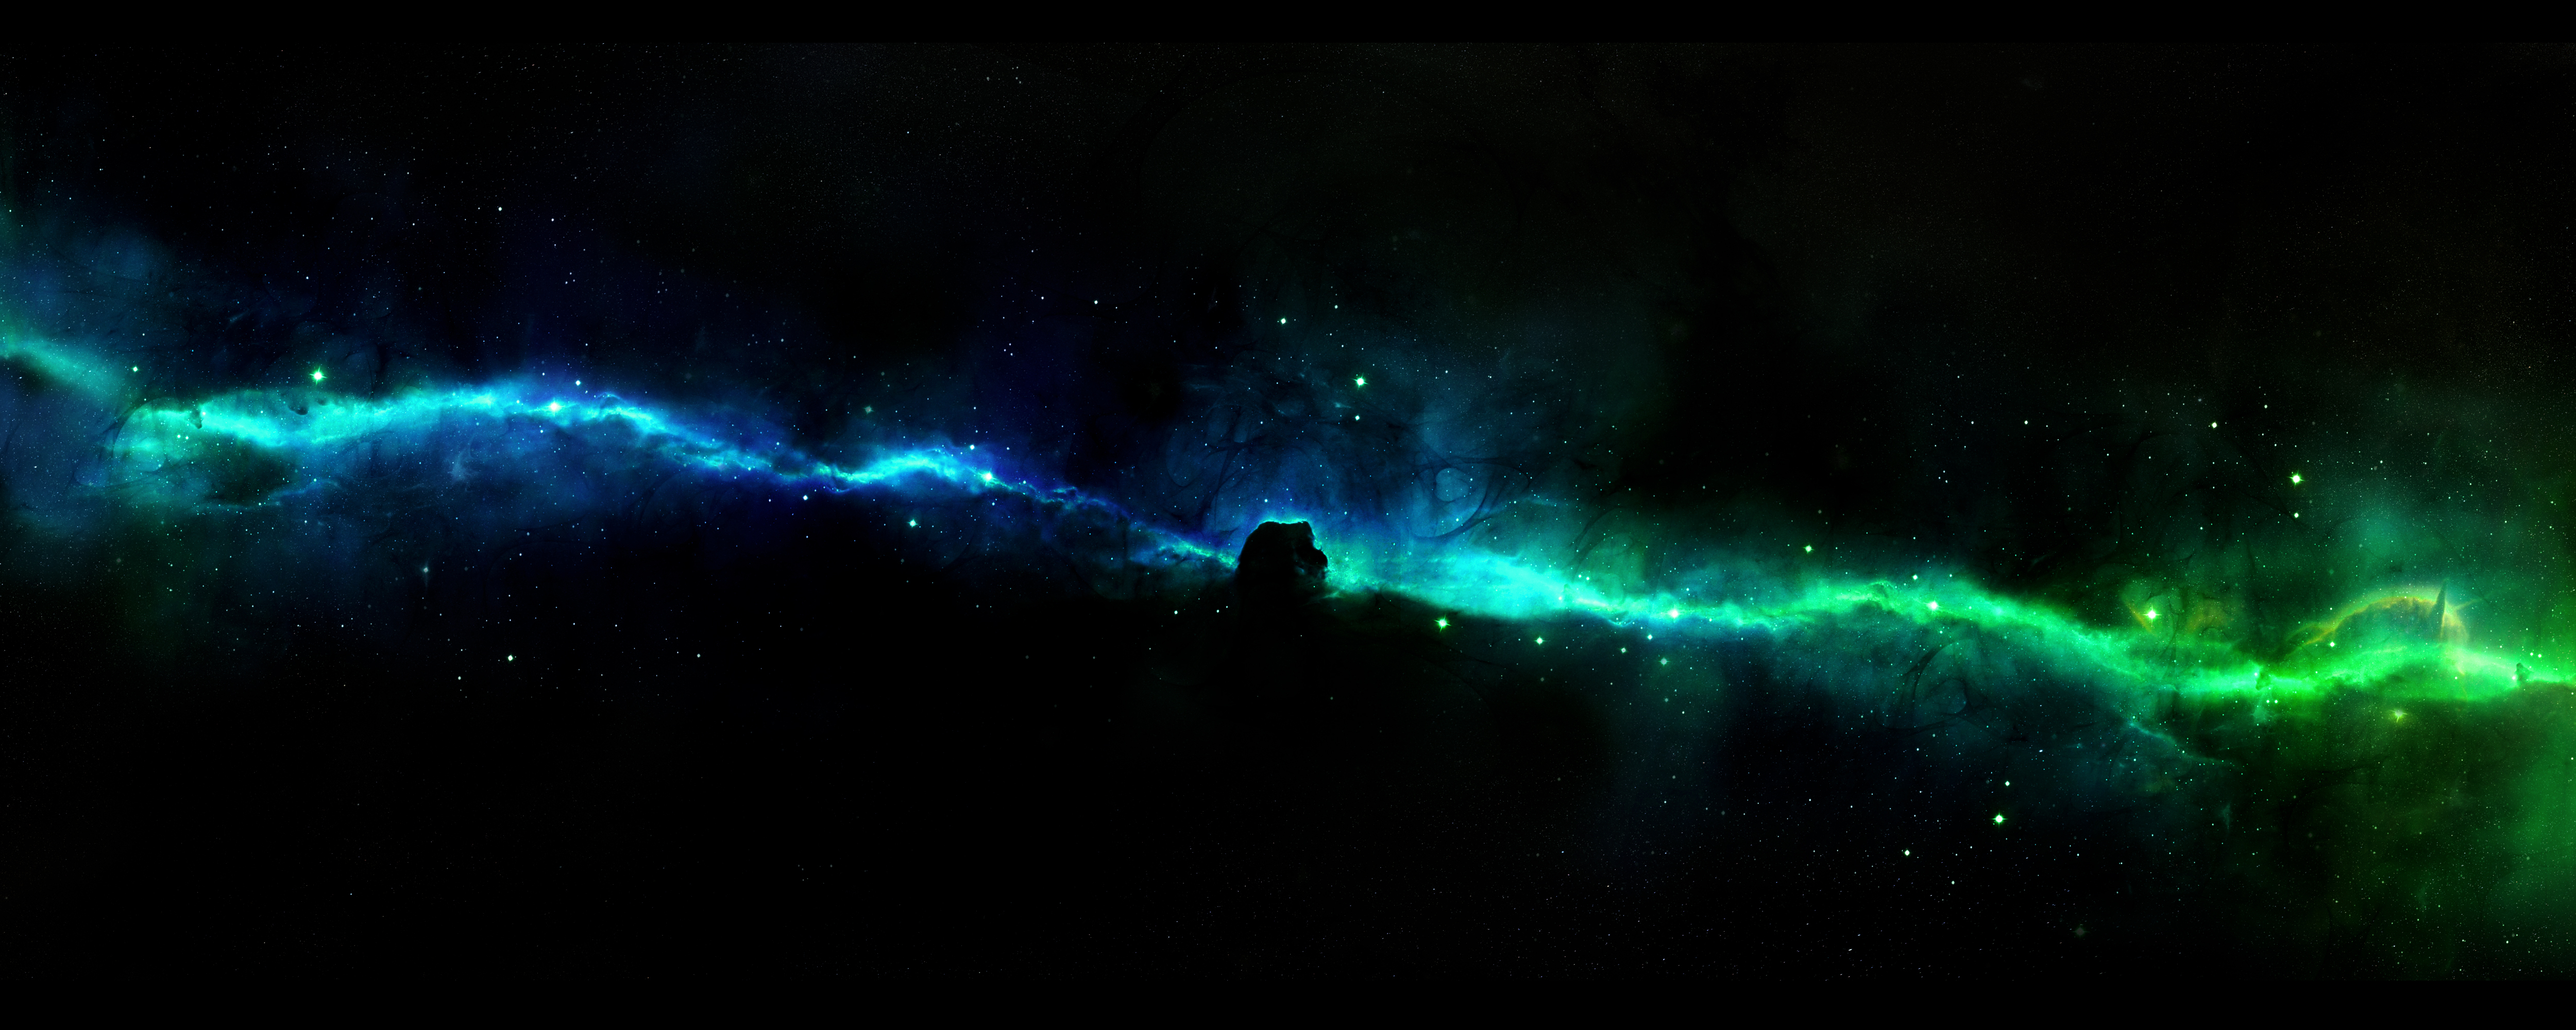 4K wallpaper   Space   space nebula stars deep space   5000x2000 5000x2000